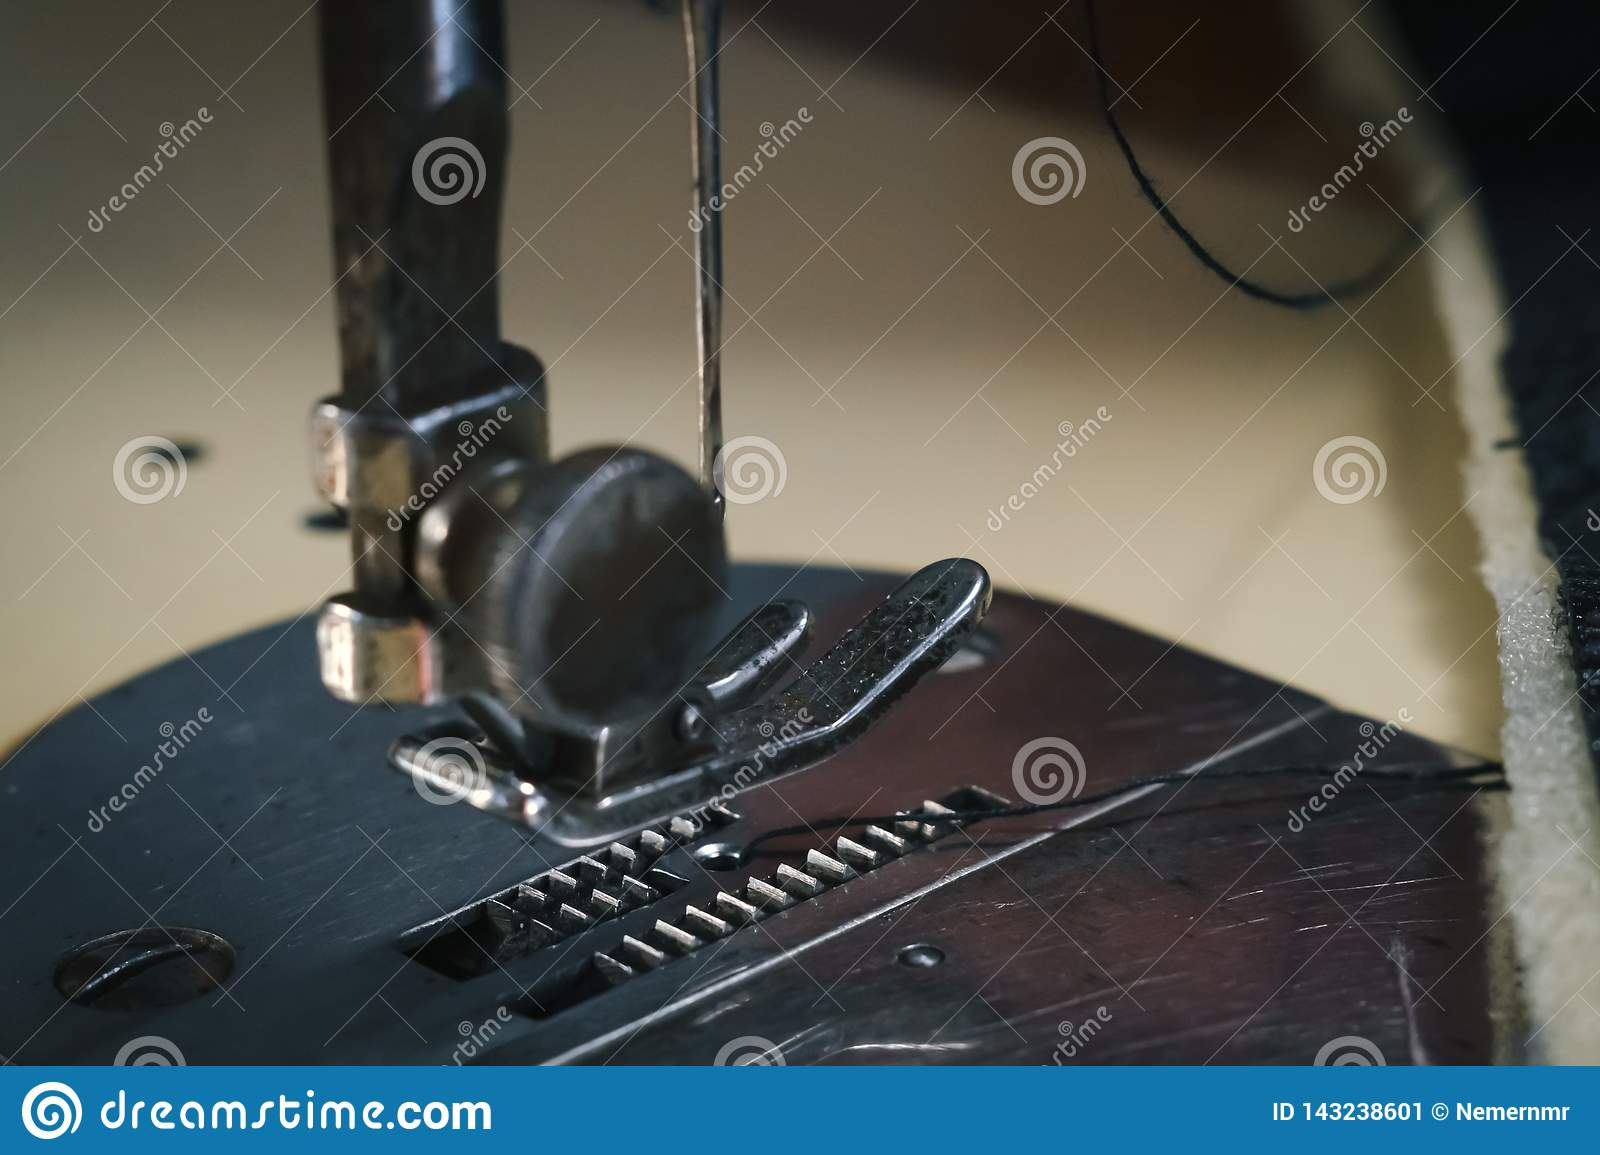 Close up Detail of old sewing machine with a low depth of field, traditional, autentic sewing